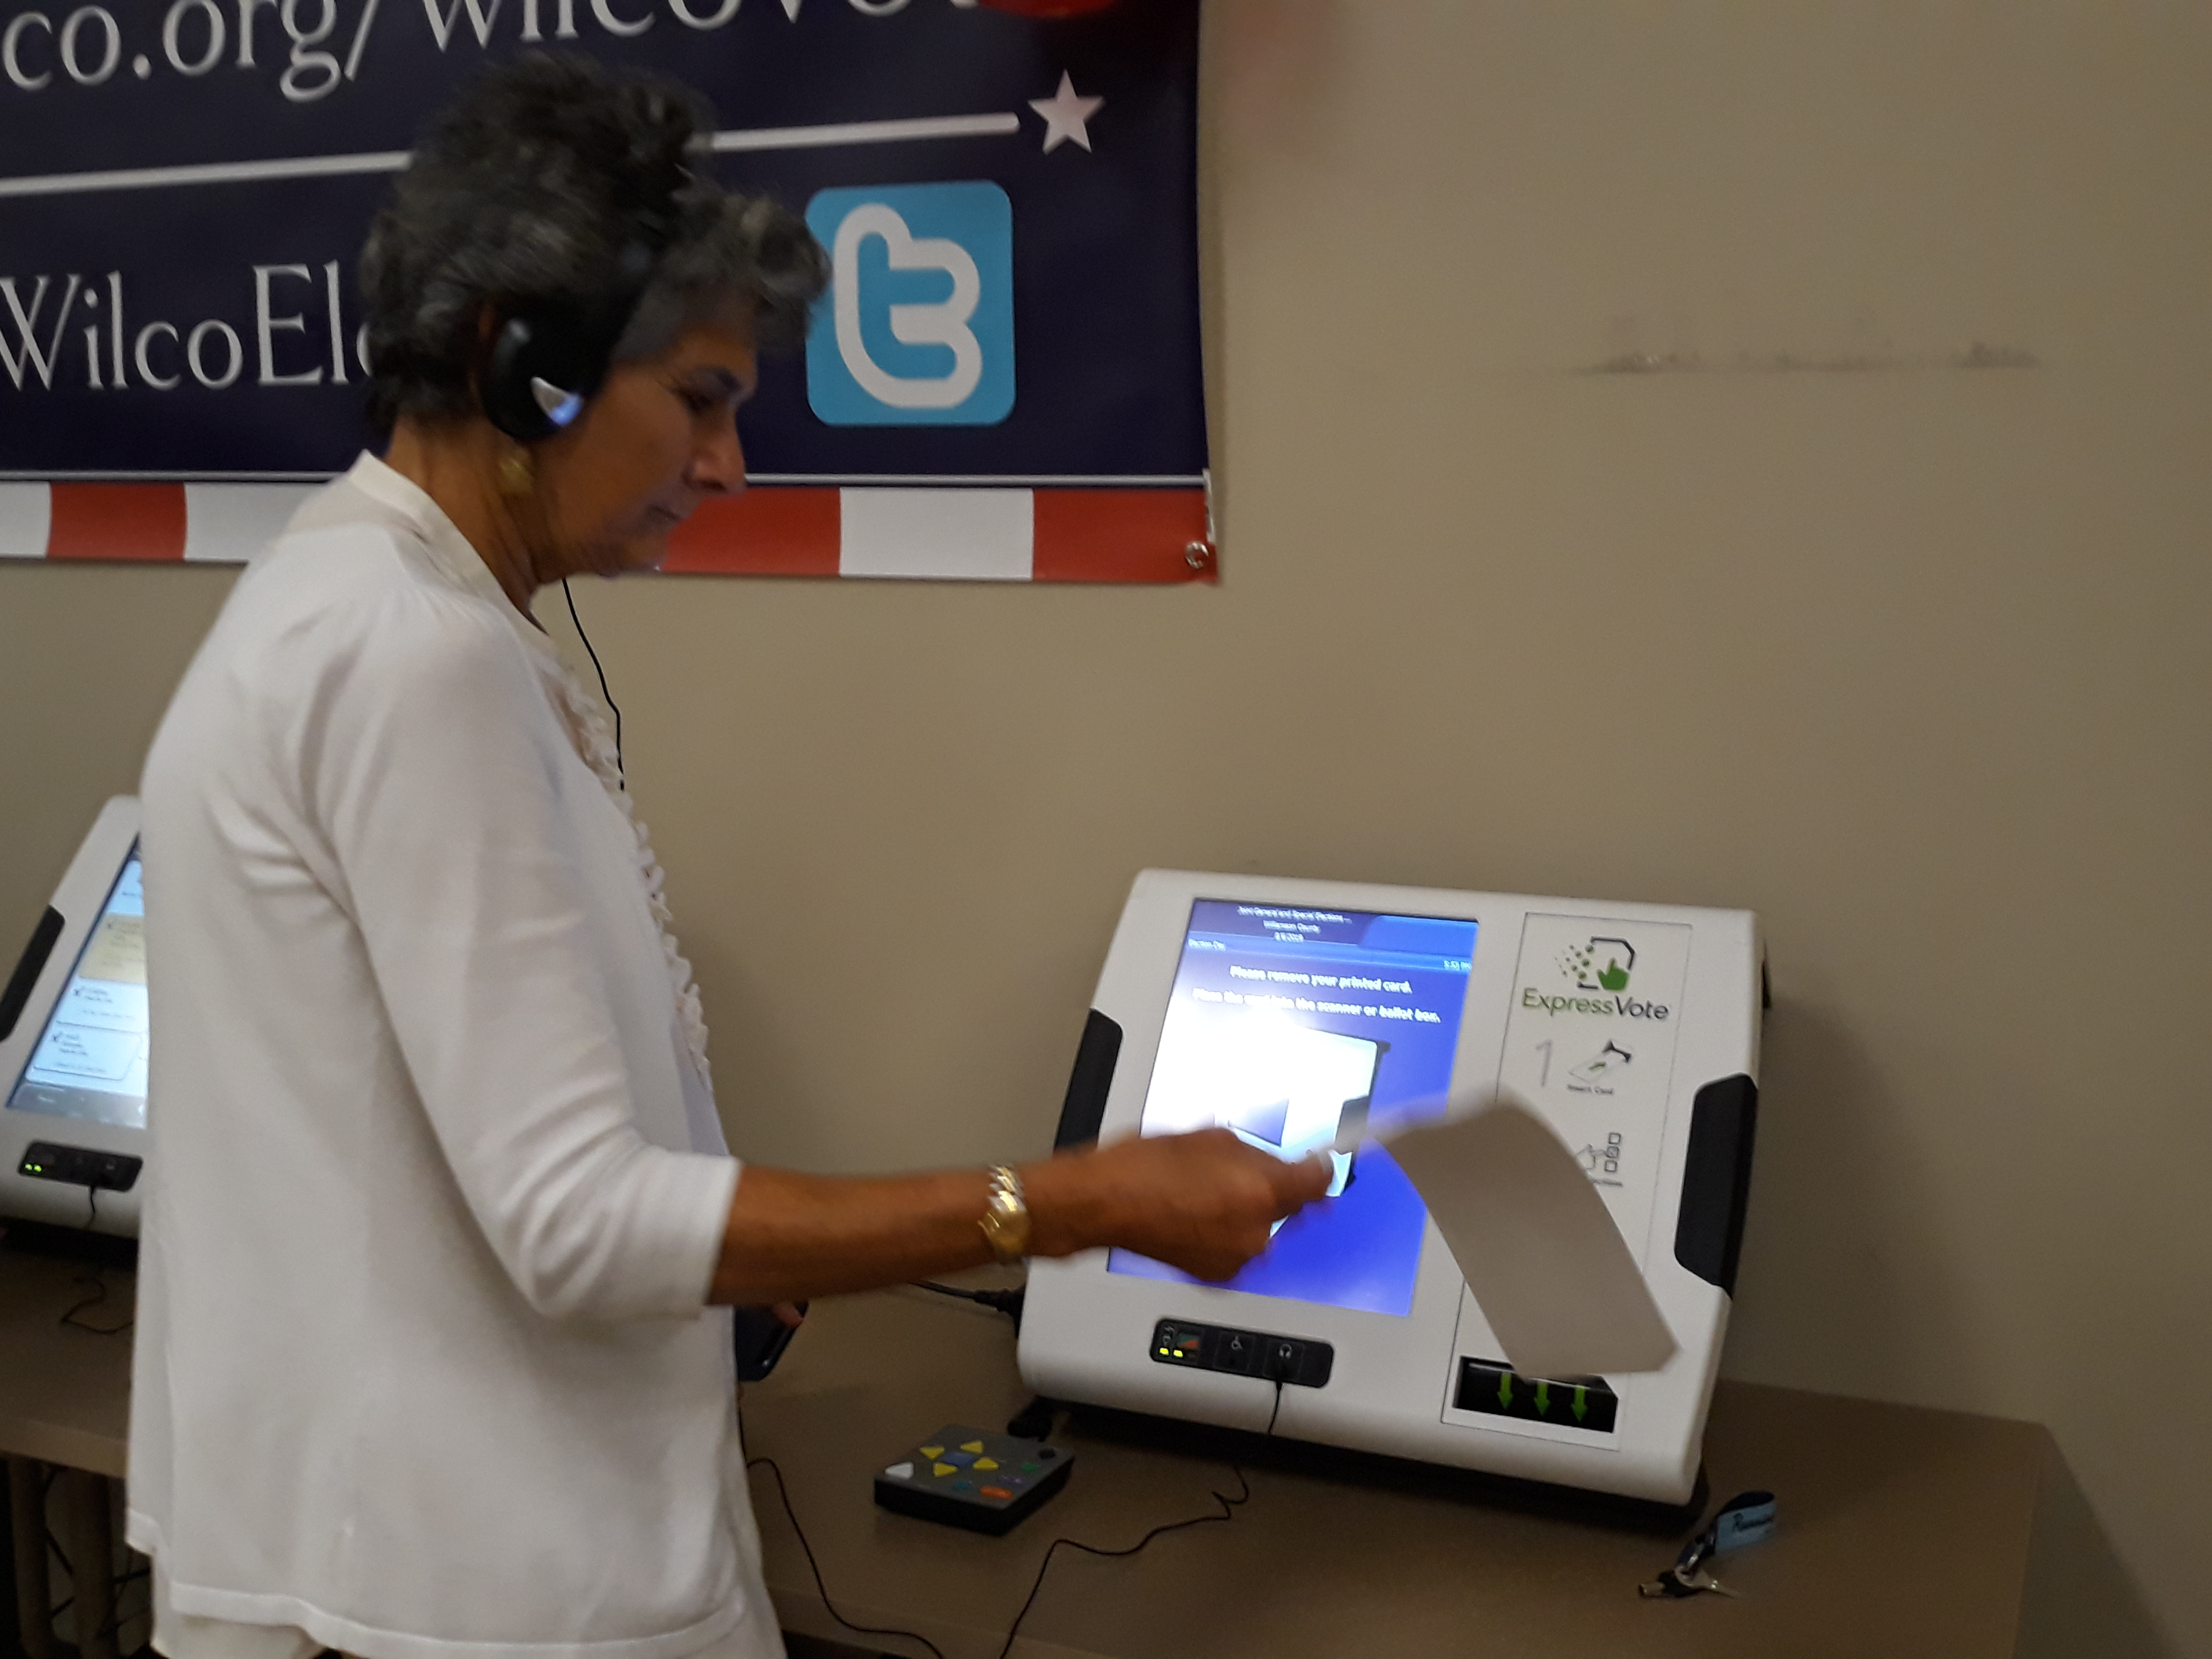 Commissioner Cook uses a headset for the hearing impaired as she reviews her paper ballot she receives after voting on one of the new machines.